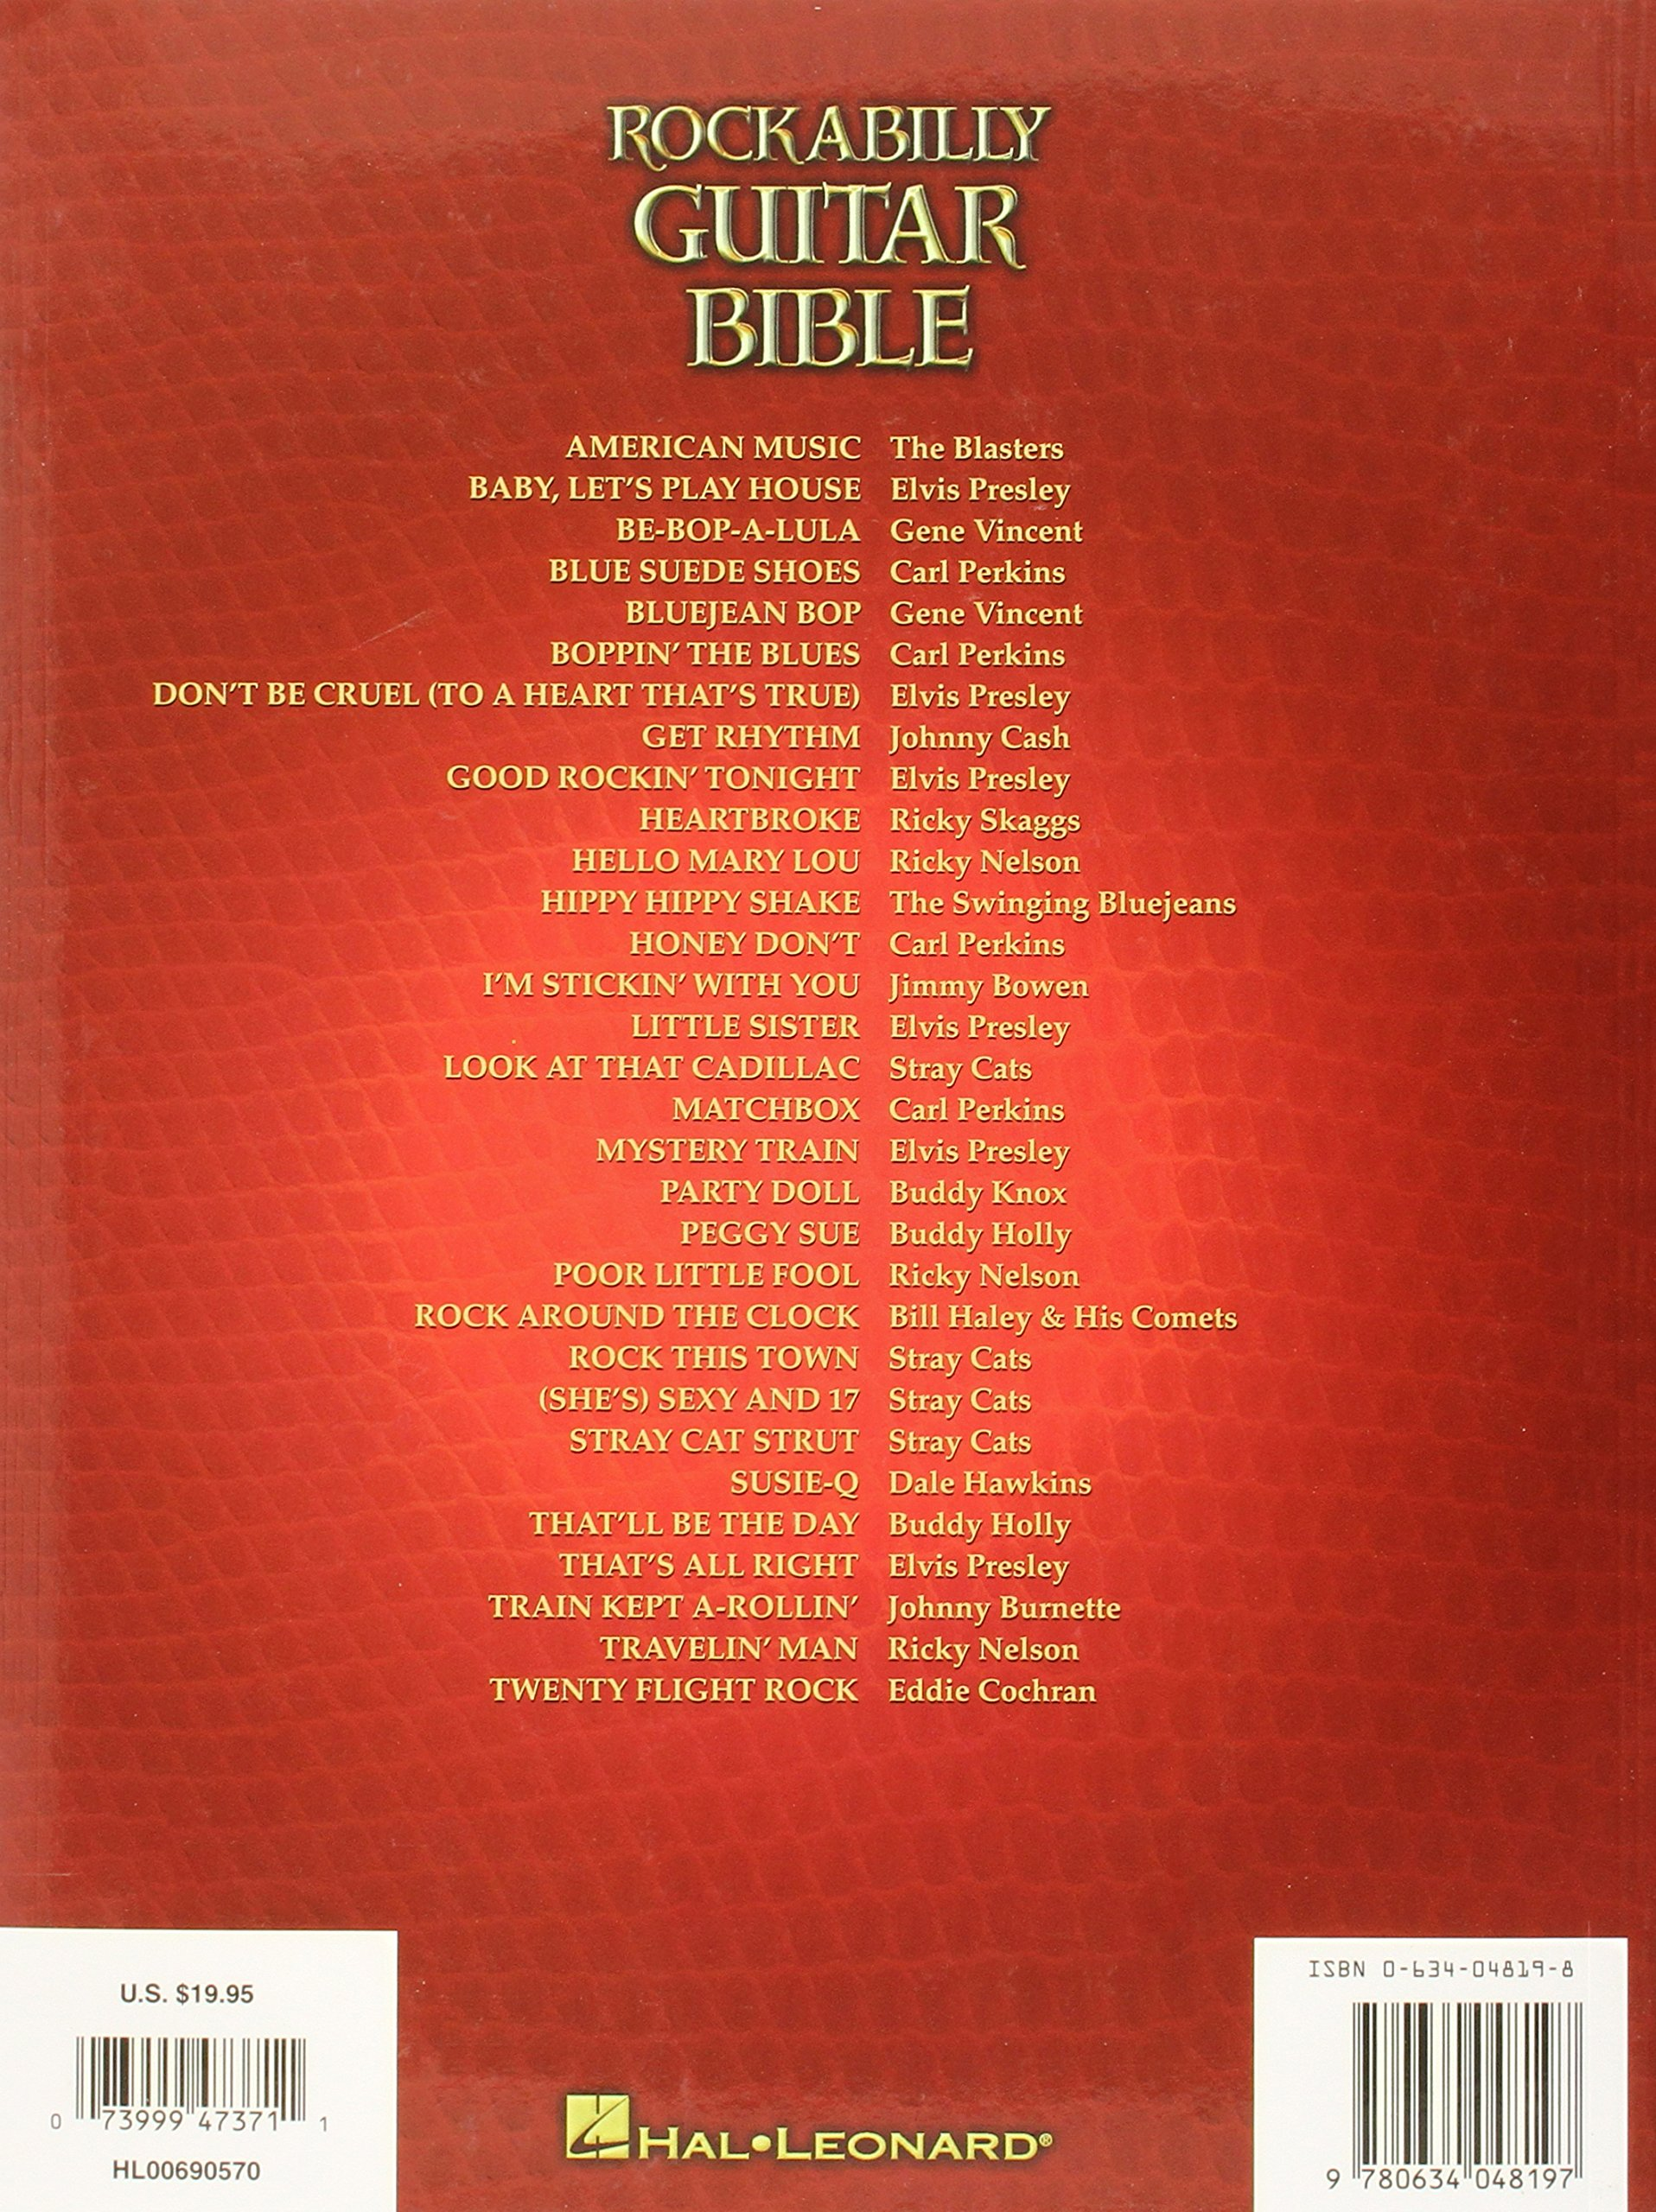 Rockabilly Guitar Bible Guitar Tab Sheet Music Instrumental Album